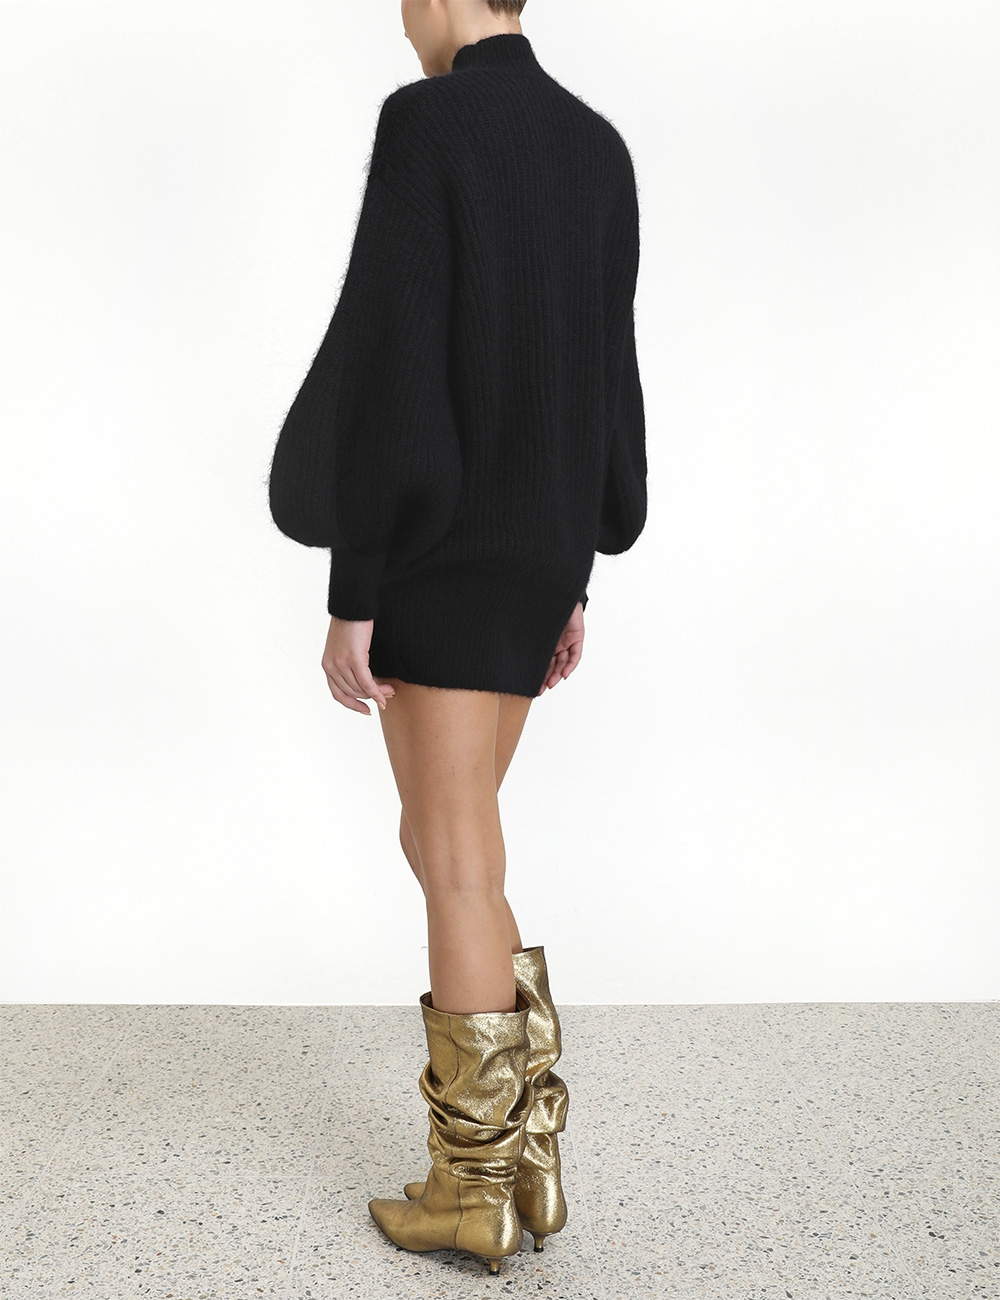 Resistance Batwing Bow Dress